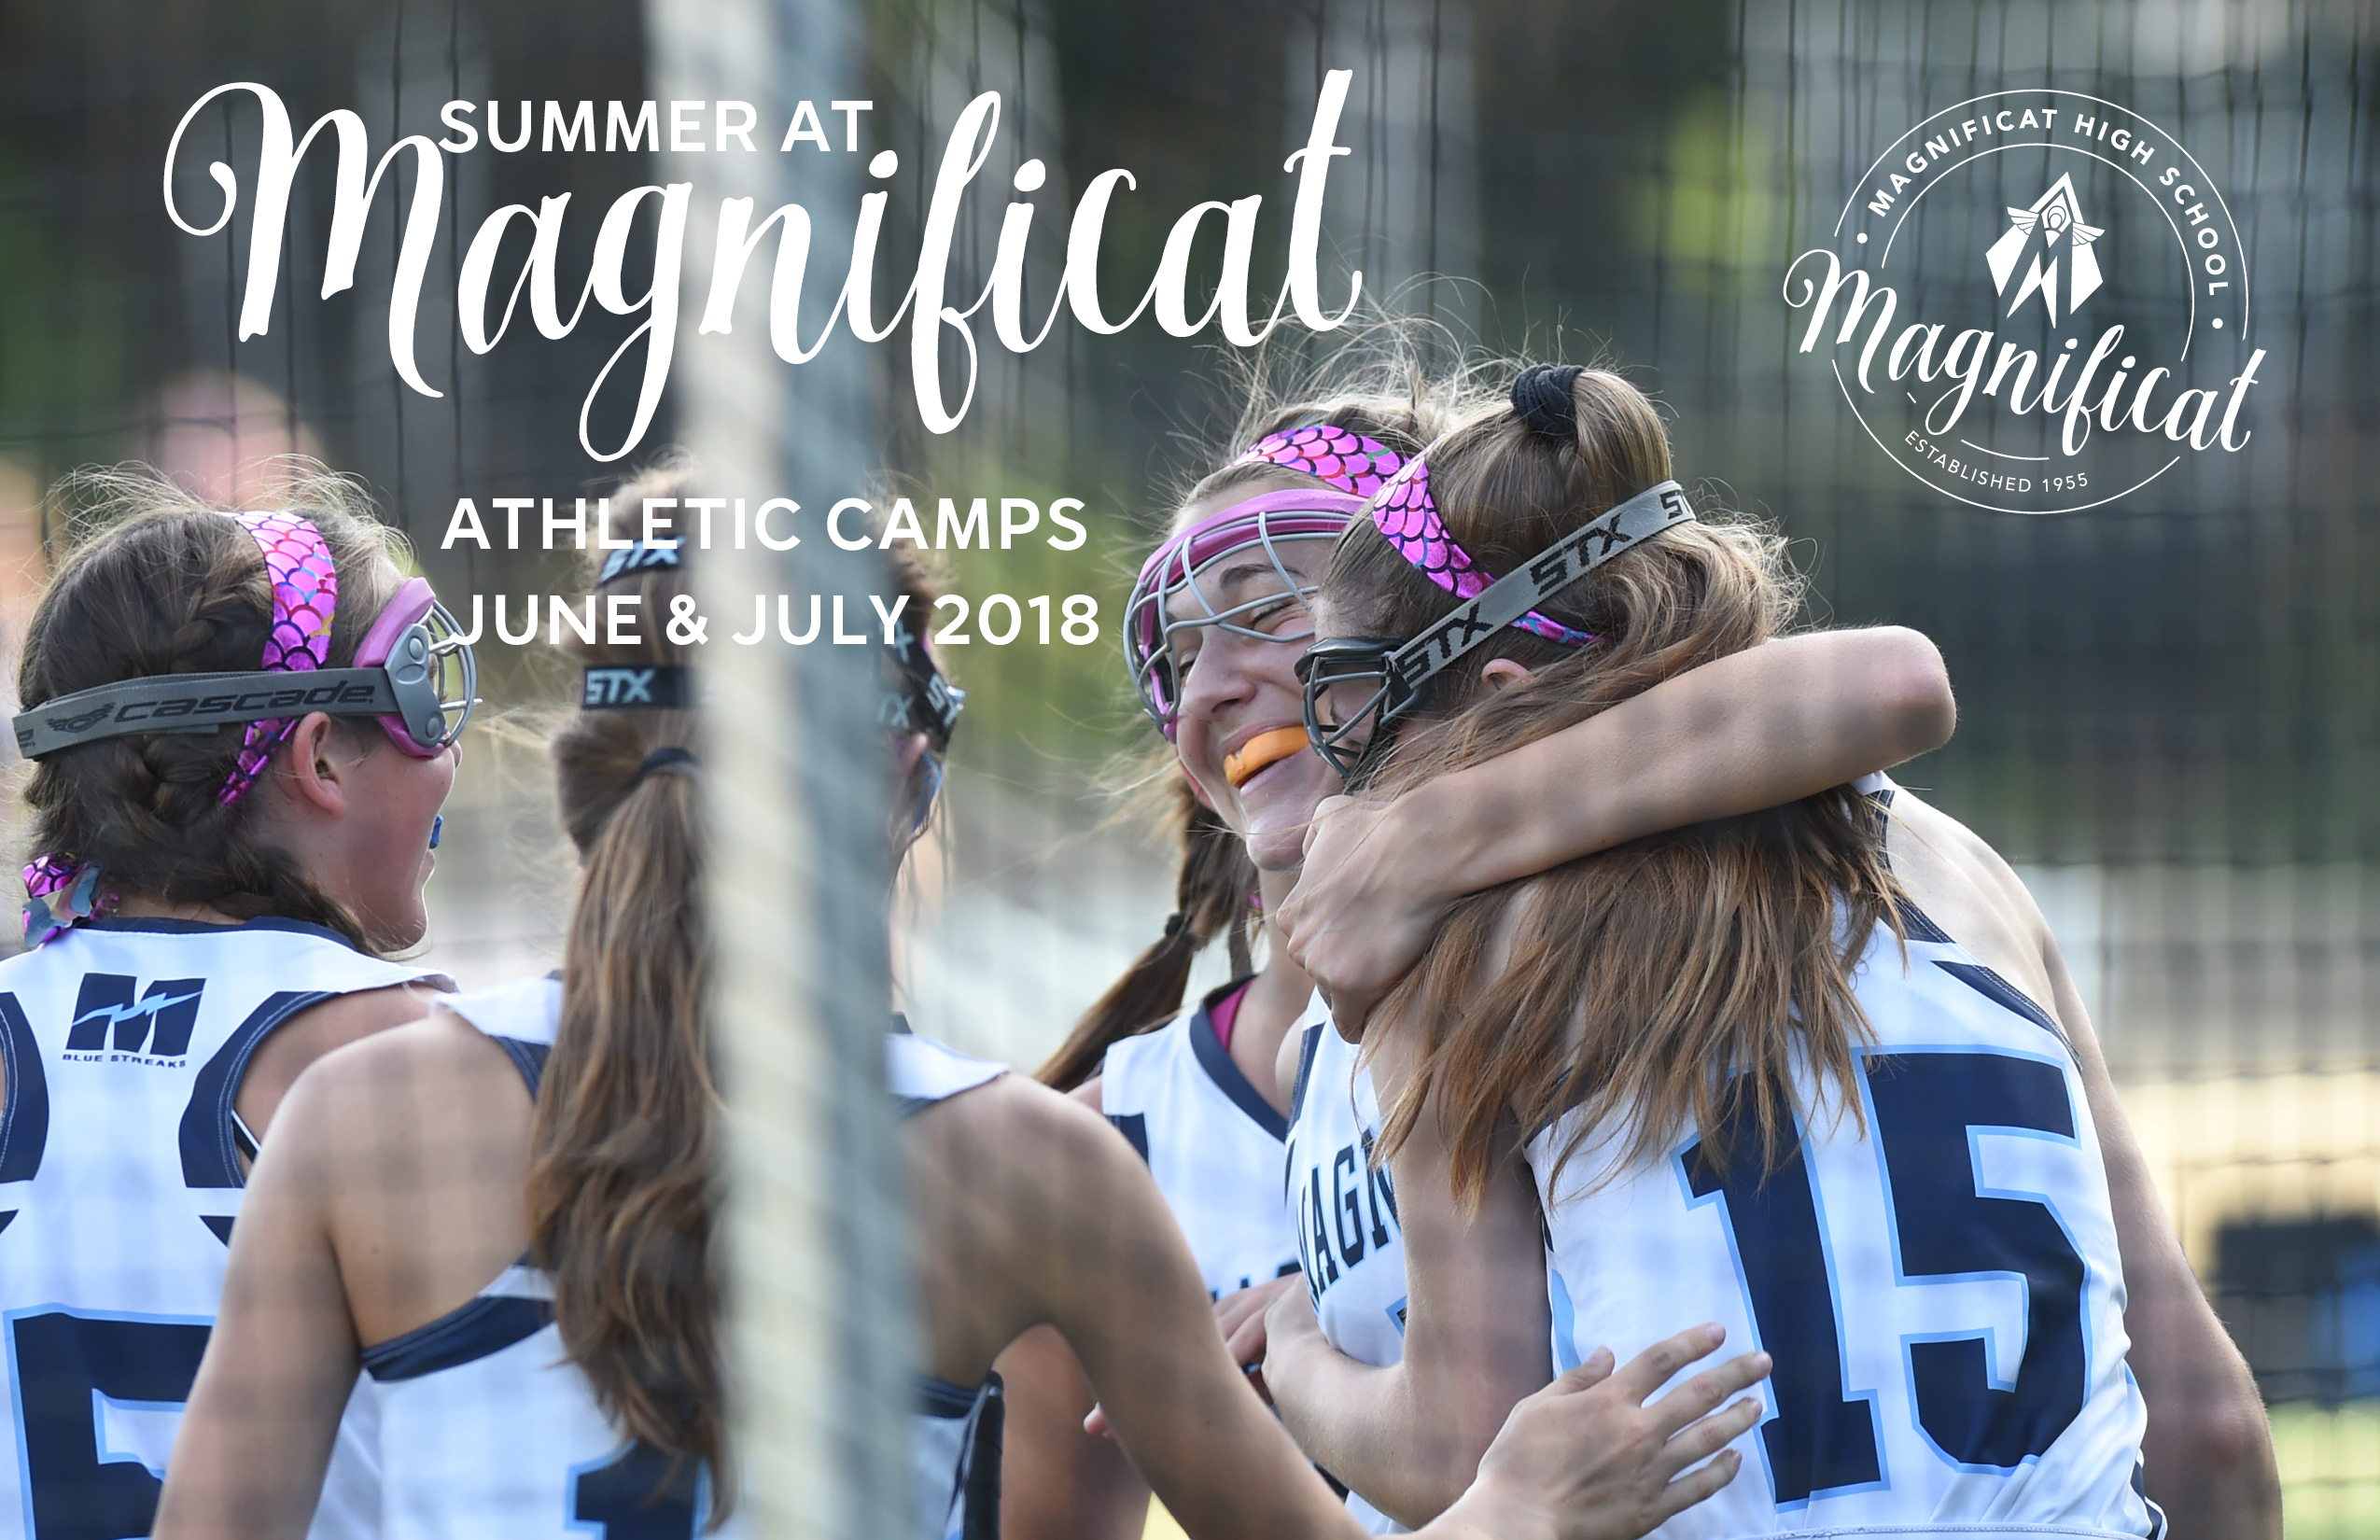 Magnificat Summer Athletic Camps – Registration Opens February 20th